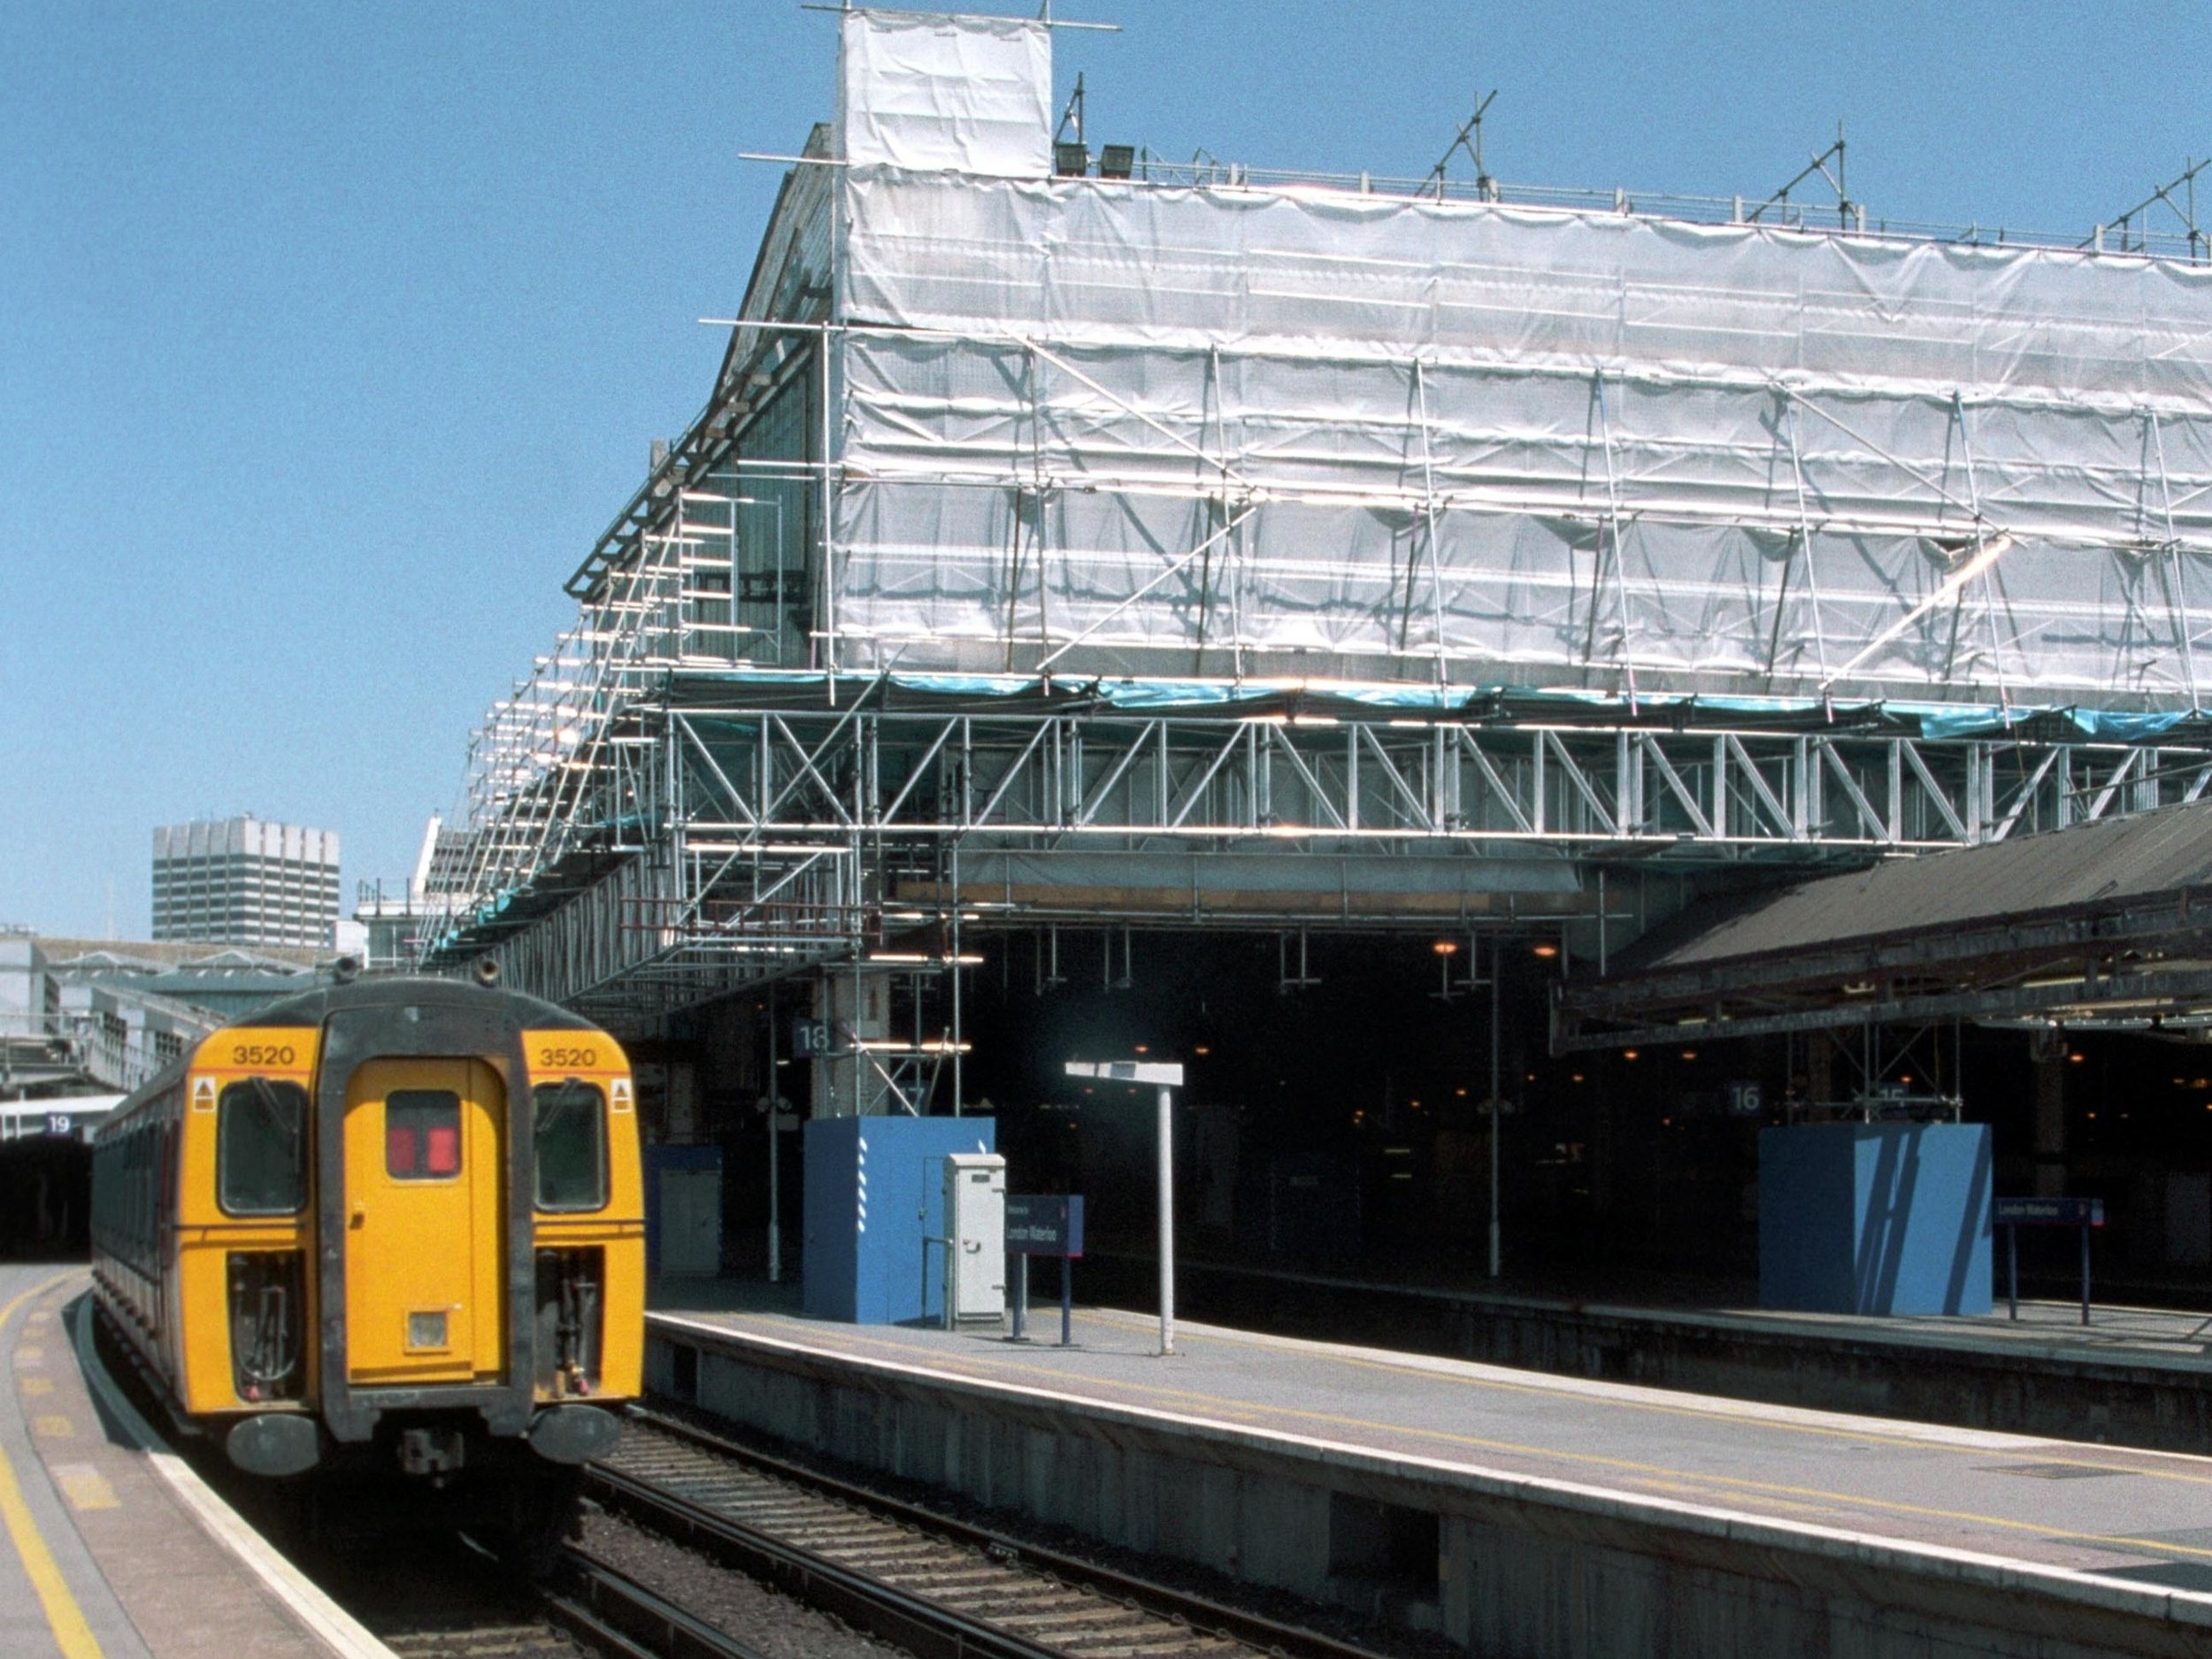 The railway remained fully operational during construction